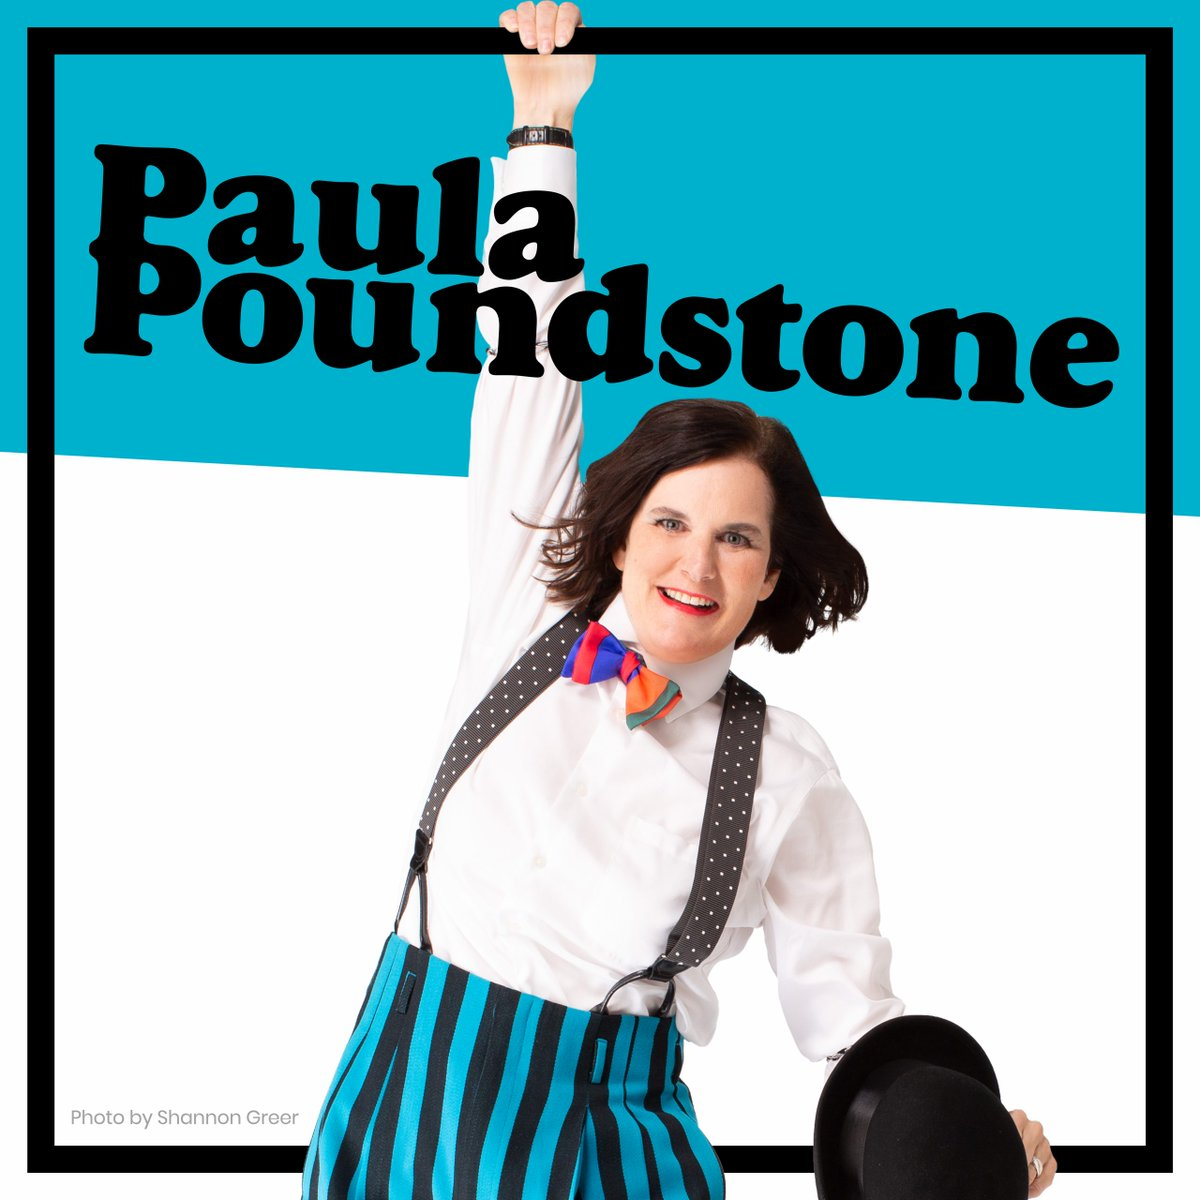 Comedian Poundstone: 'Silly is important' - The 'Wait, Wait ... Don't Tell Me!' comic will be at Buckhead Theatre! Read more: bit.ly/3k7cV3k Don't miss Paula Poundstone here this Fri, Sept 17! livemu.sc/394EaFA